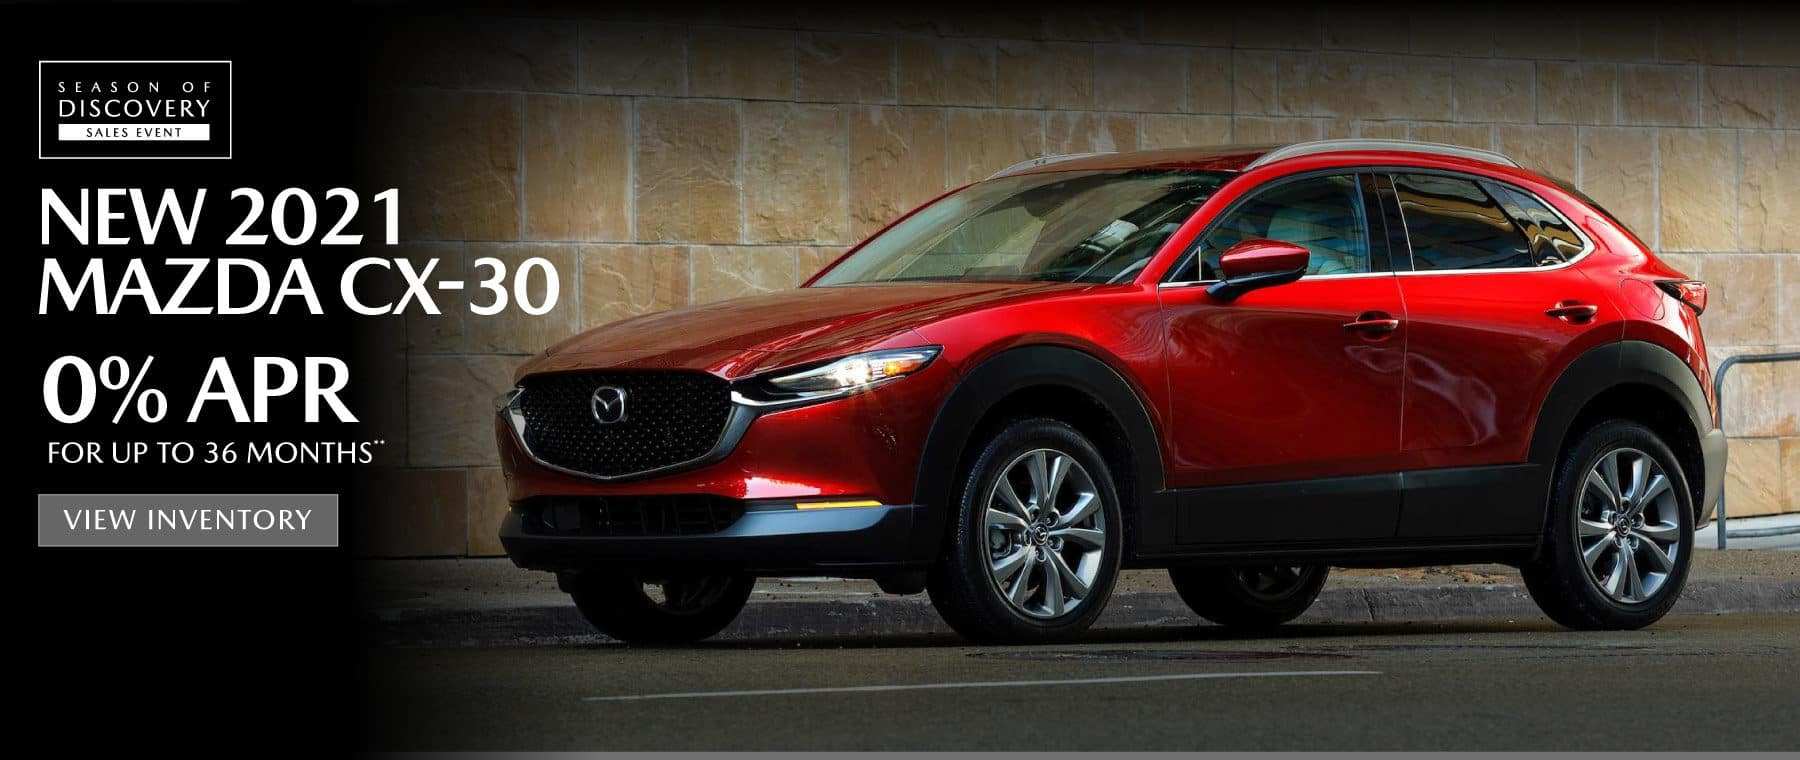 2021 Mazda CX-30   0% APR for 36 months   View Inventory